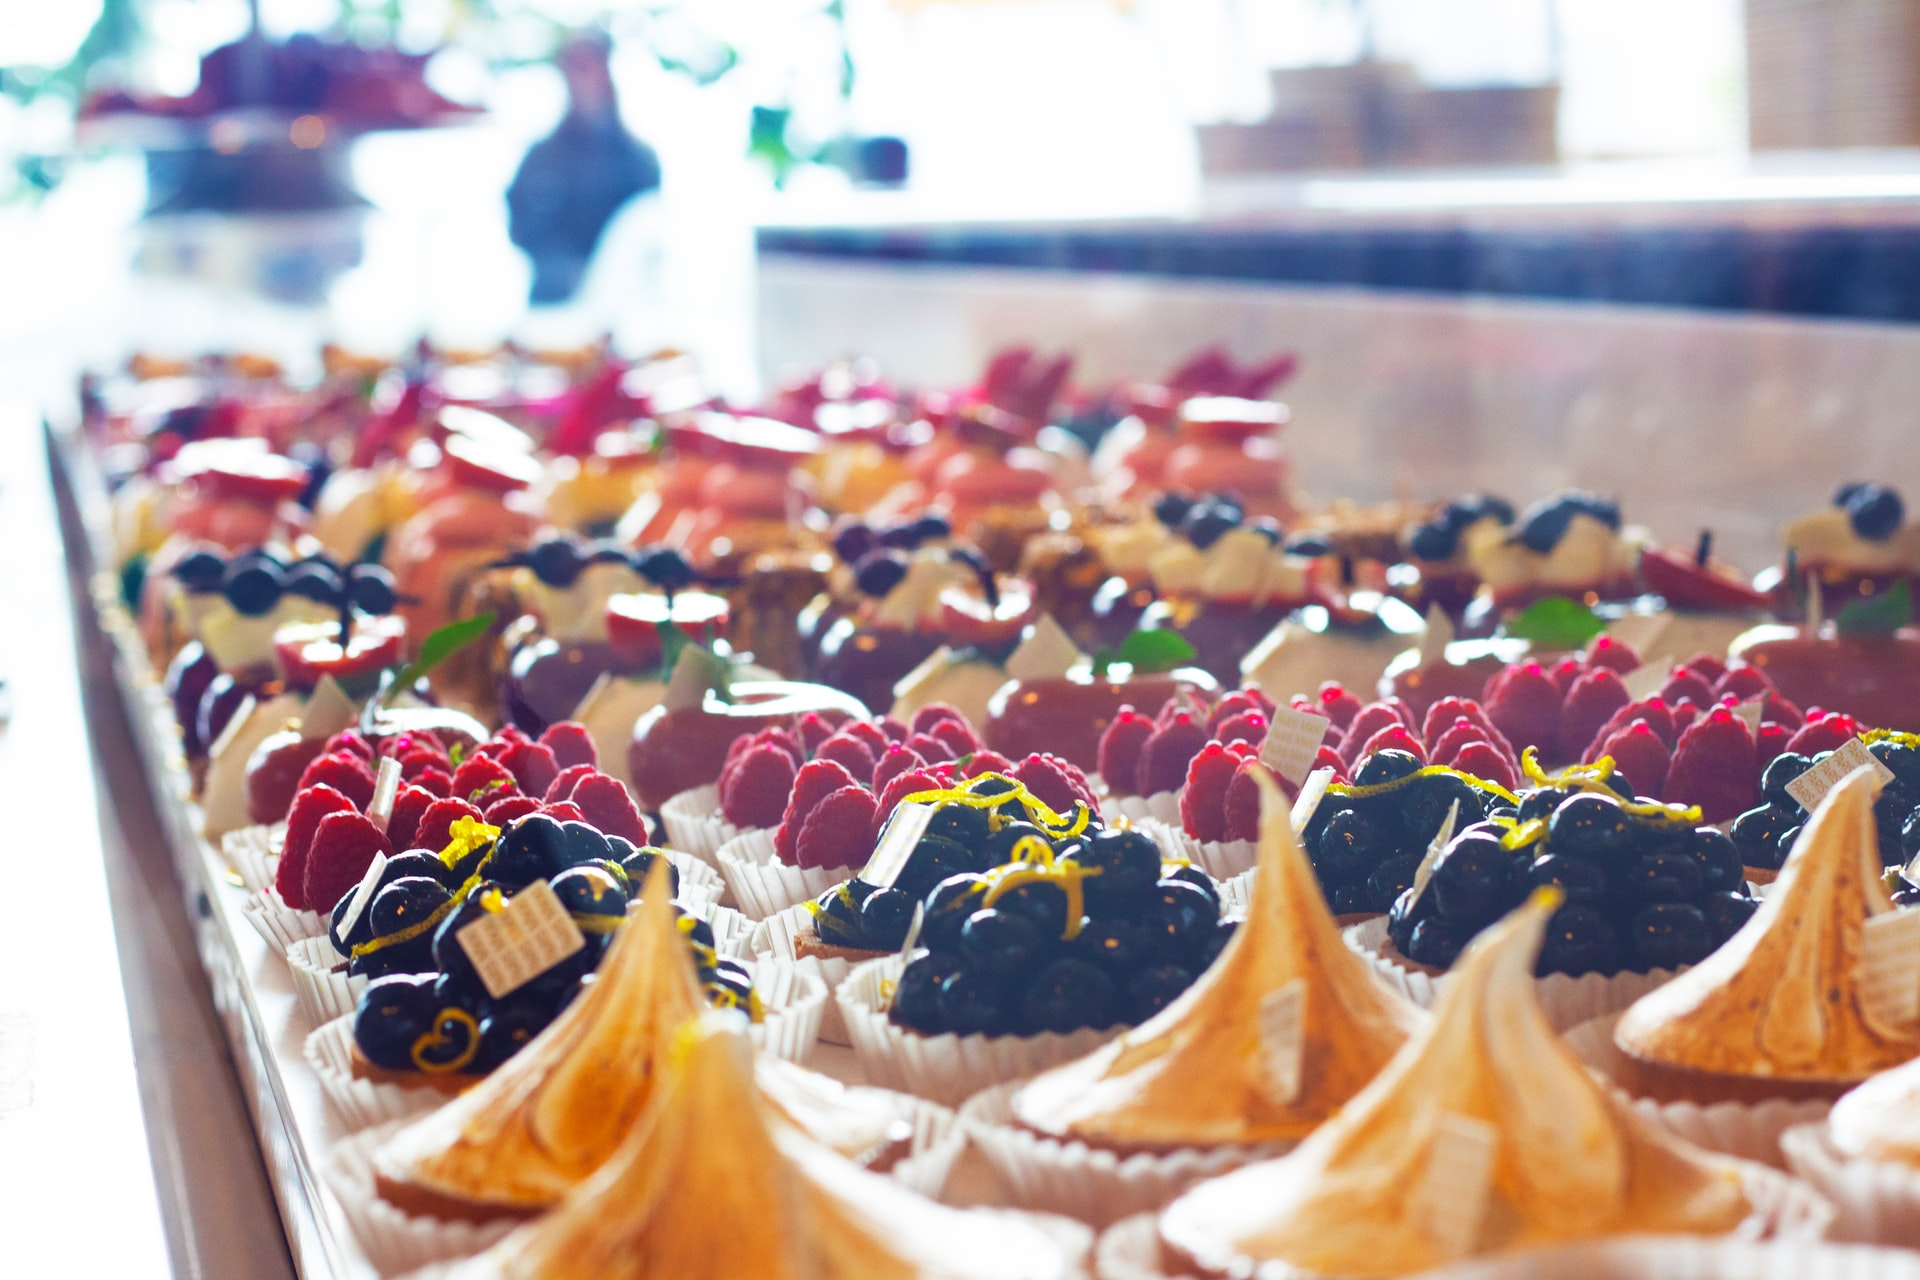 Desserts, bakeries and sweet moments in Palermo